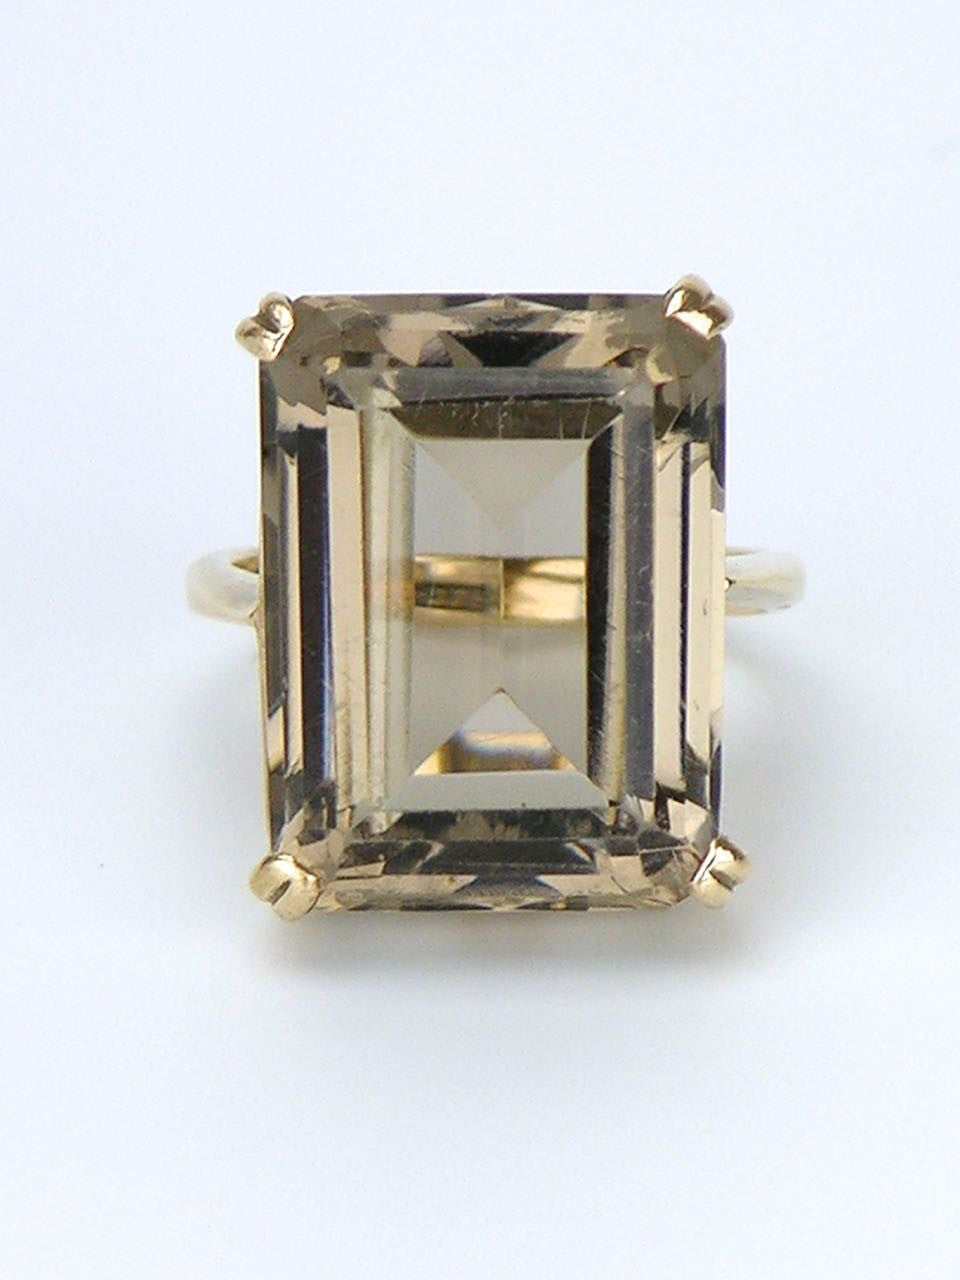 9k yellow gold smoky quartz cocktail ring